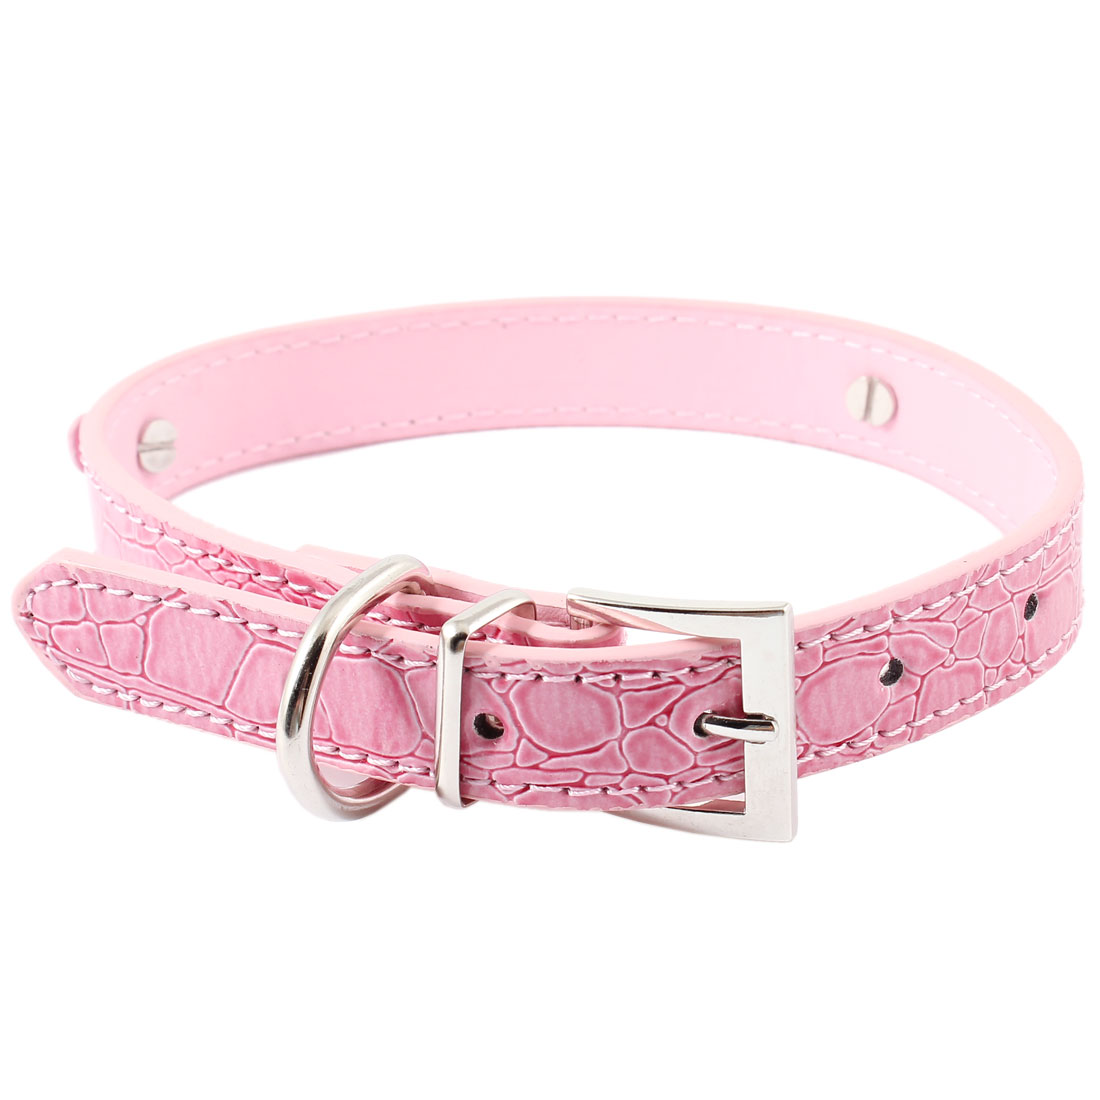 Pet Faux Leather Adjustable Single Prong Buckle Belt Yorkie Dog Collar Pink M